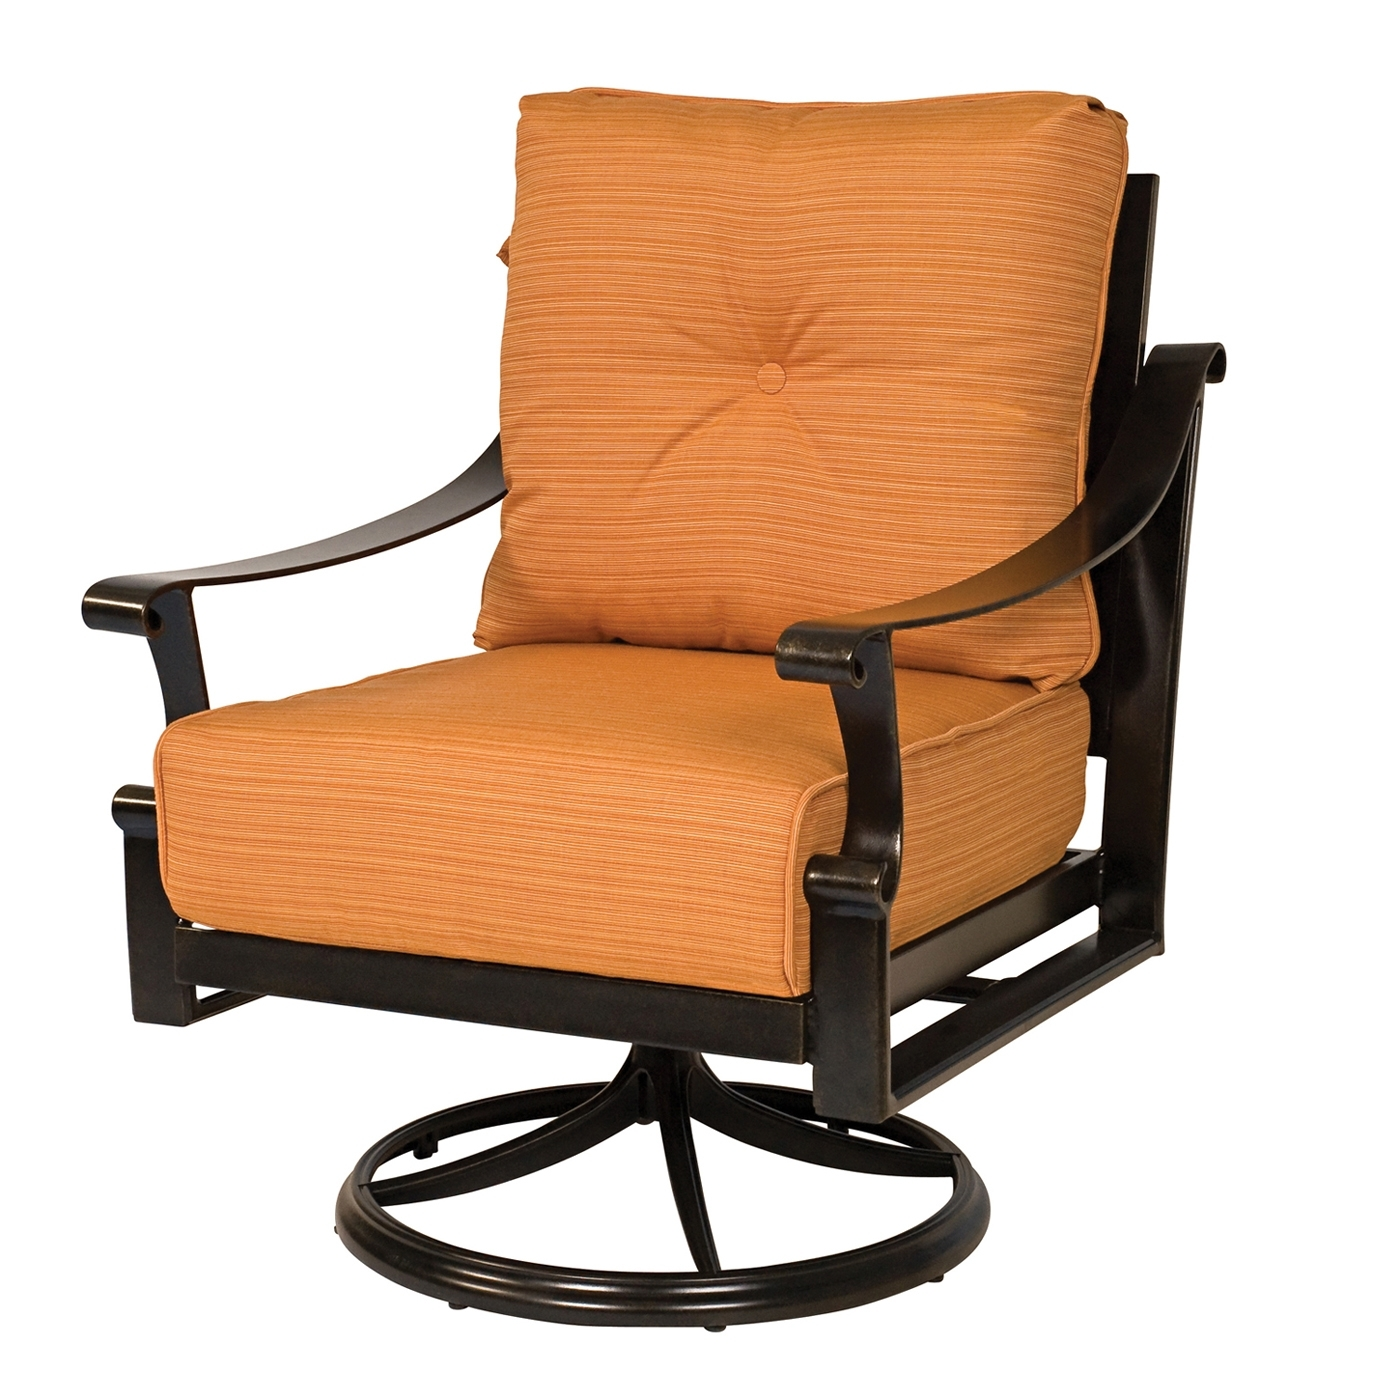 Patio Rocking Swivel Chairs Pertaining To Most Popular Inspirational Swivel Rocker Patio Chair Dmsgb Mauriciohm Chairs Sale (View 11 of 15)